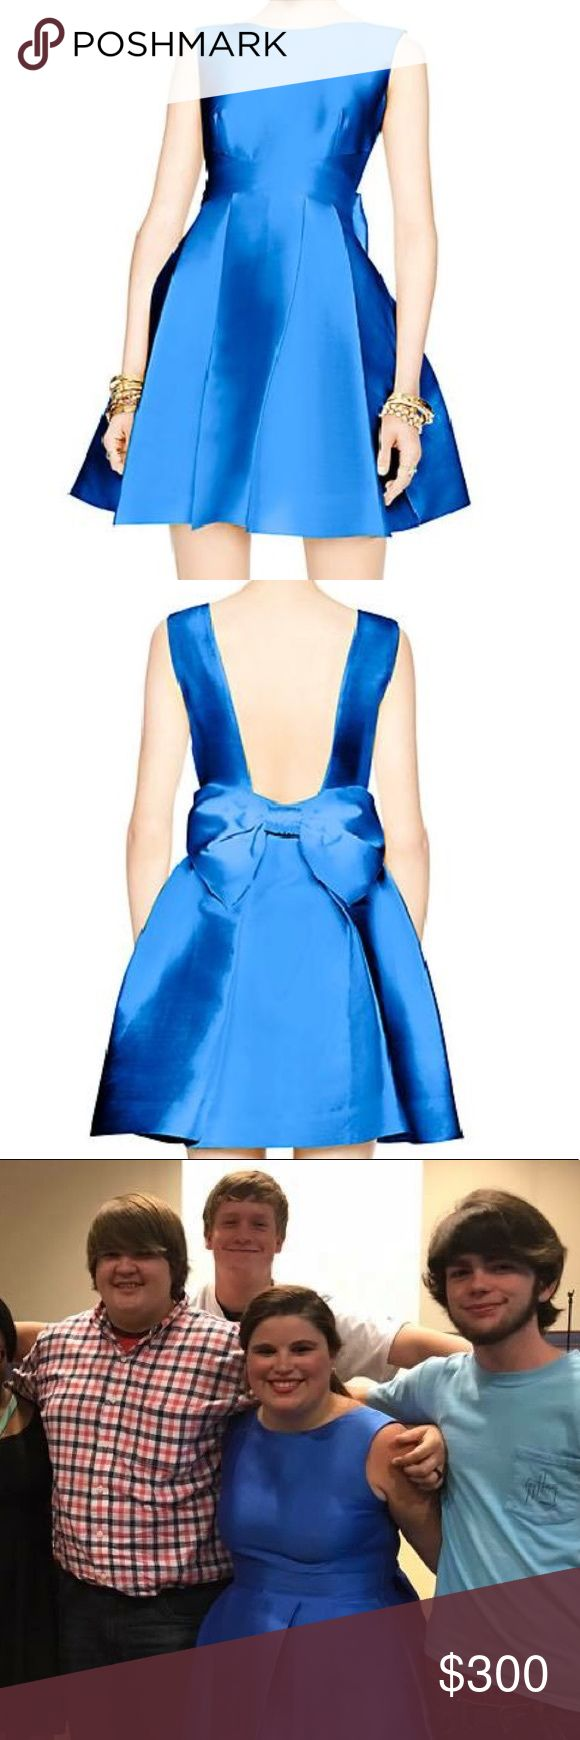 Kate spade open bow back dress COMING SOON!!!  Please like for updates!  Size 12 Kate spade blue back bow dress. It has pockets!!!!!!  Measurements coming soon!!!! kate spade Dresses